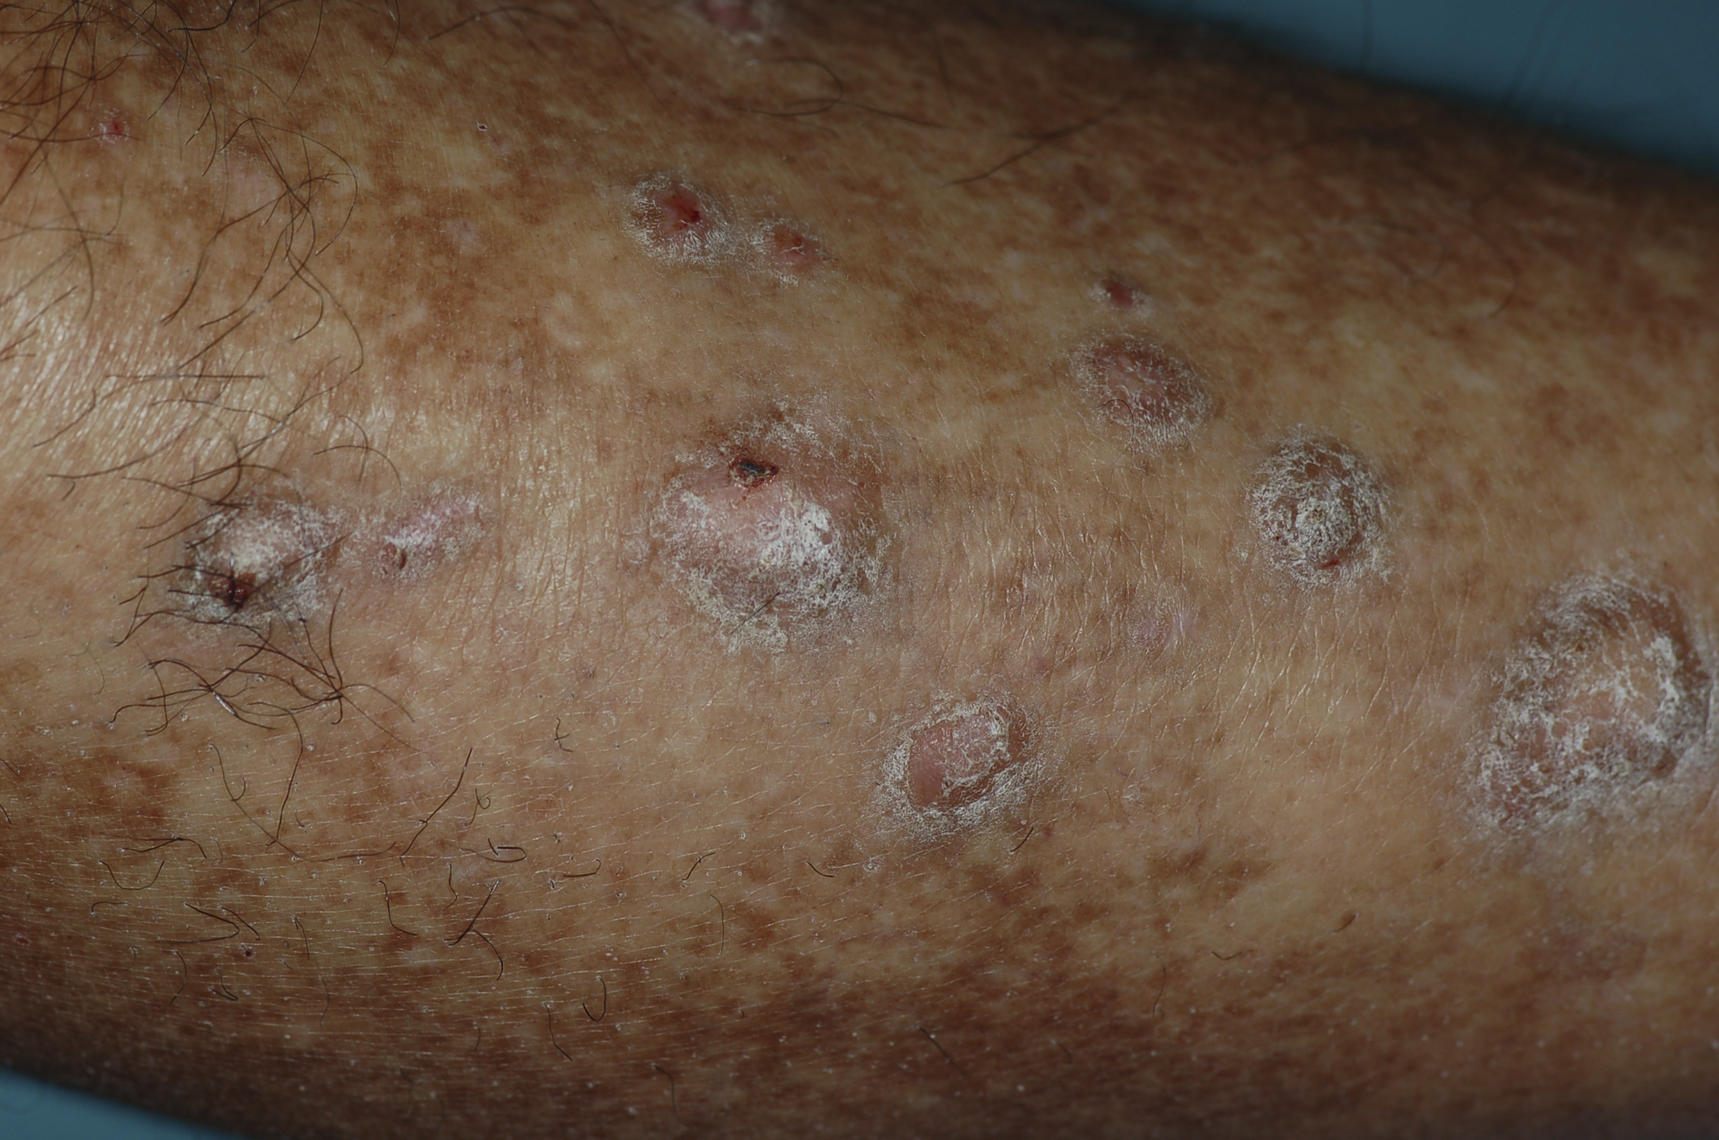 Polygonal, Flat-Topped Papules Covered with a Fine Network of White Lines on the Legs, Consistent with the Diagnosis of Lichen Planus